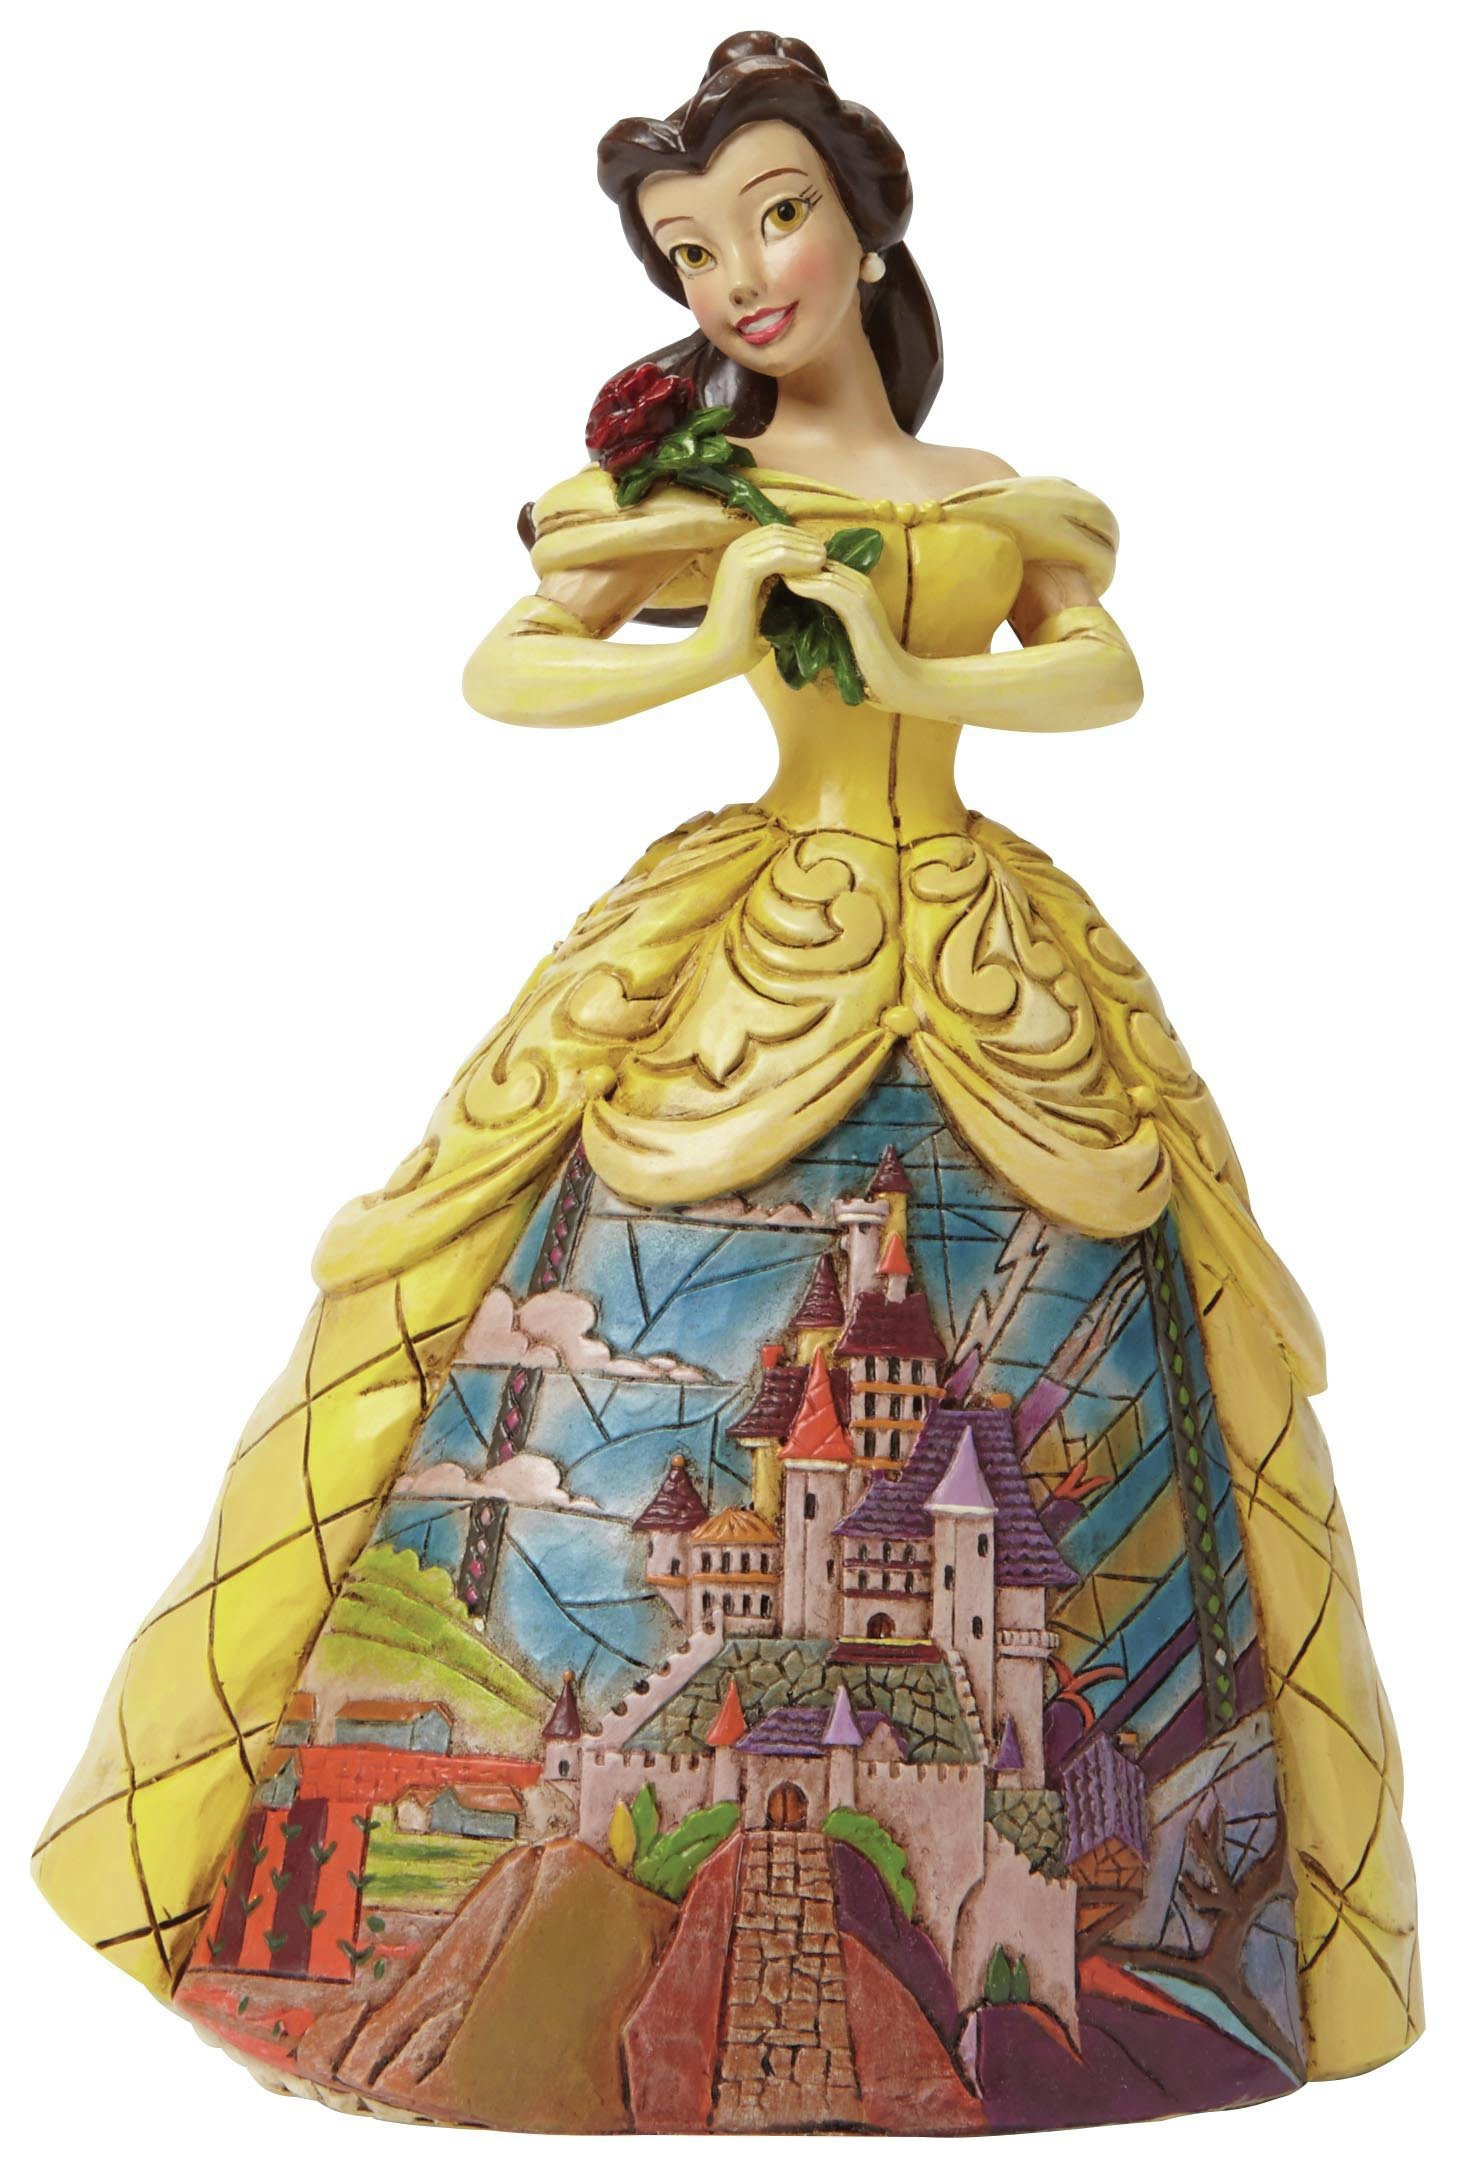 Image of Disney Traditions Enchanted Belle Ornament.